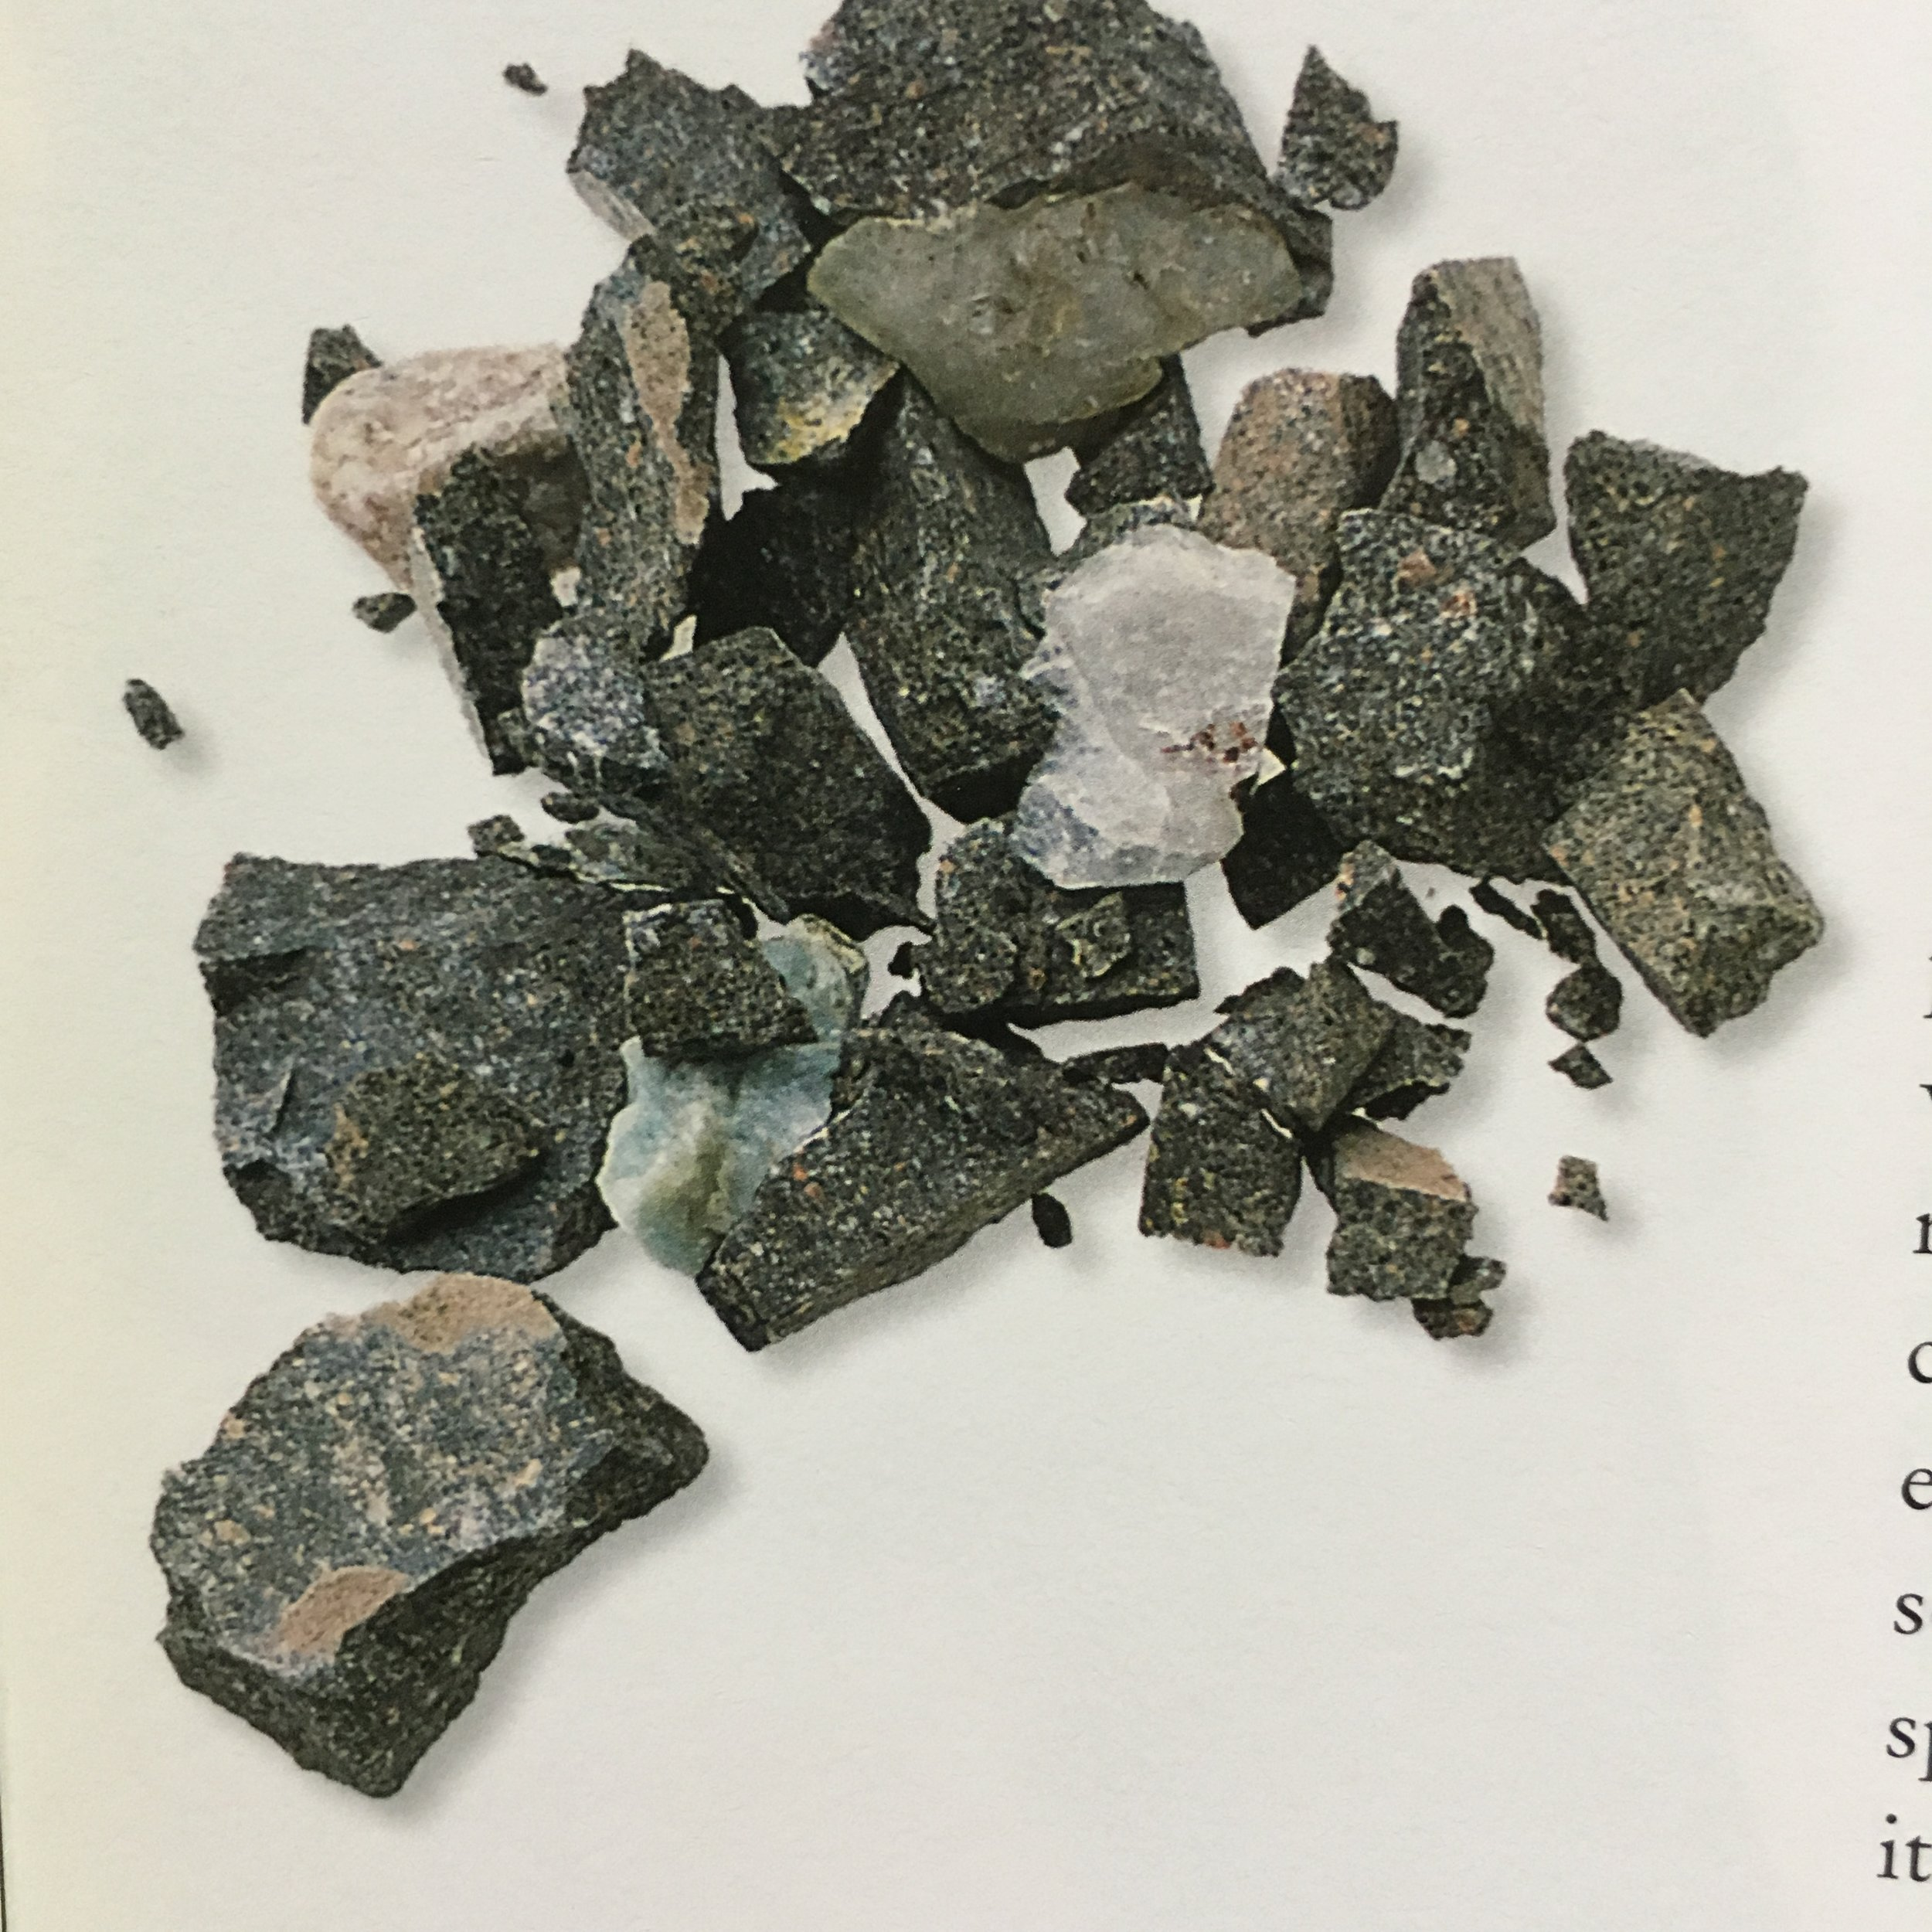 Porphyry and minerality